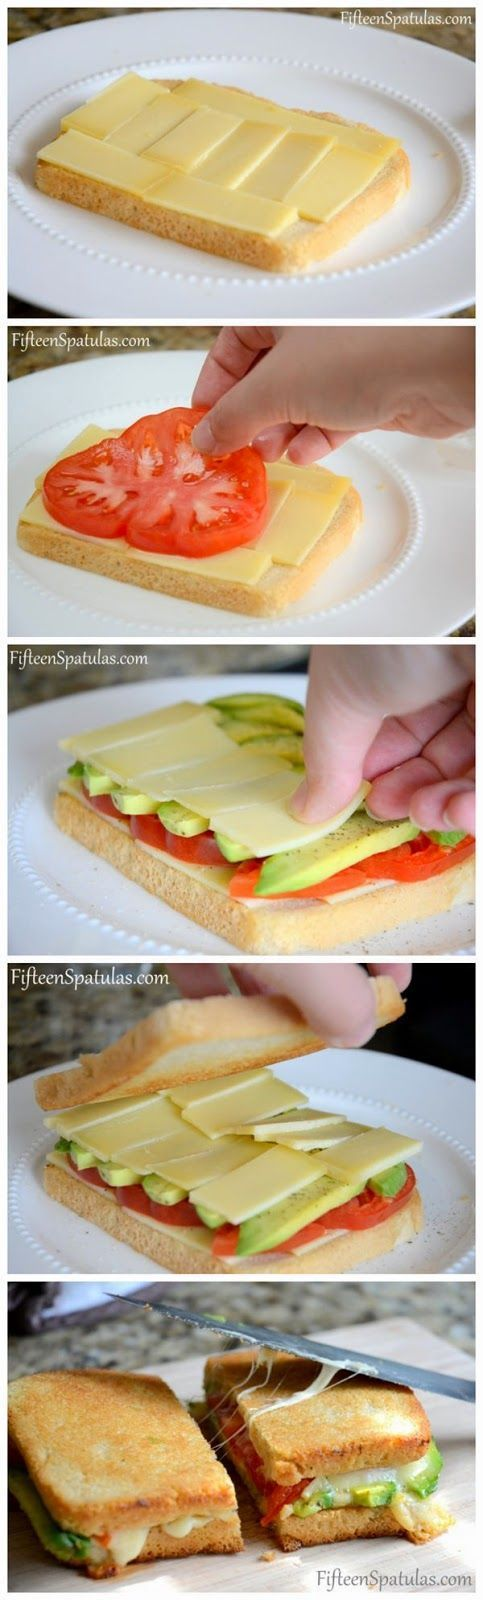 Grilled Cheese with Avocado and Heirloom Tomato.